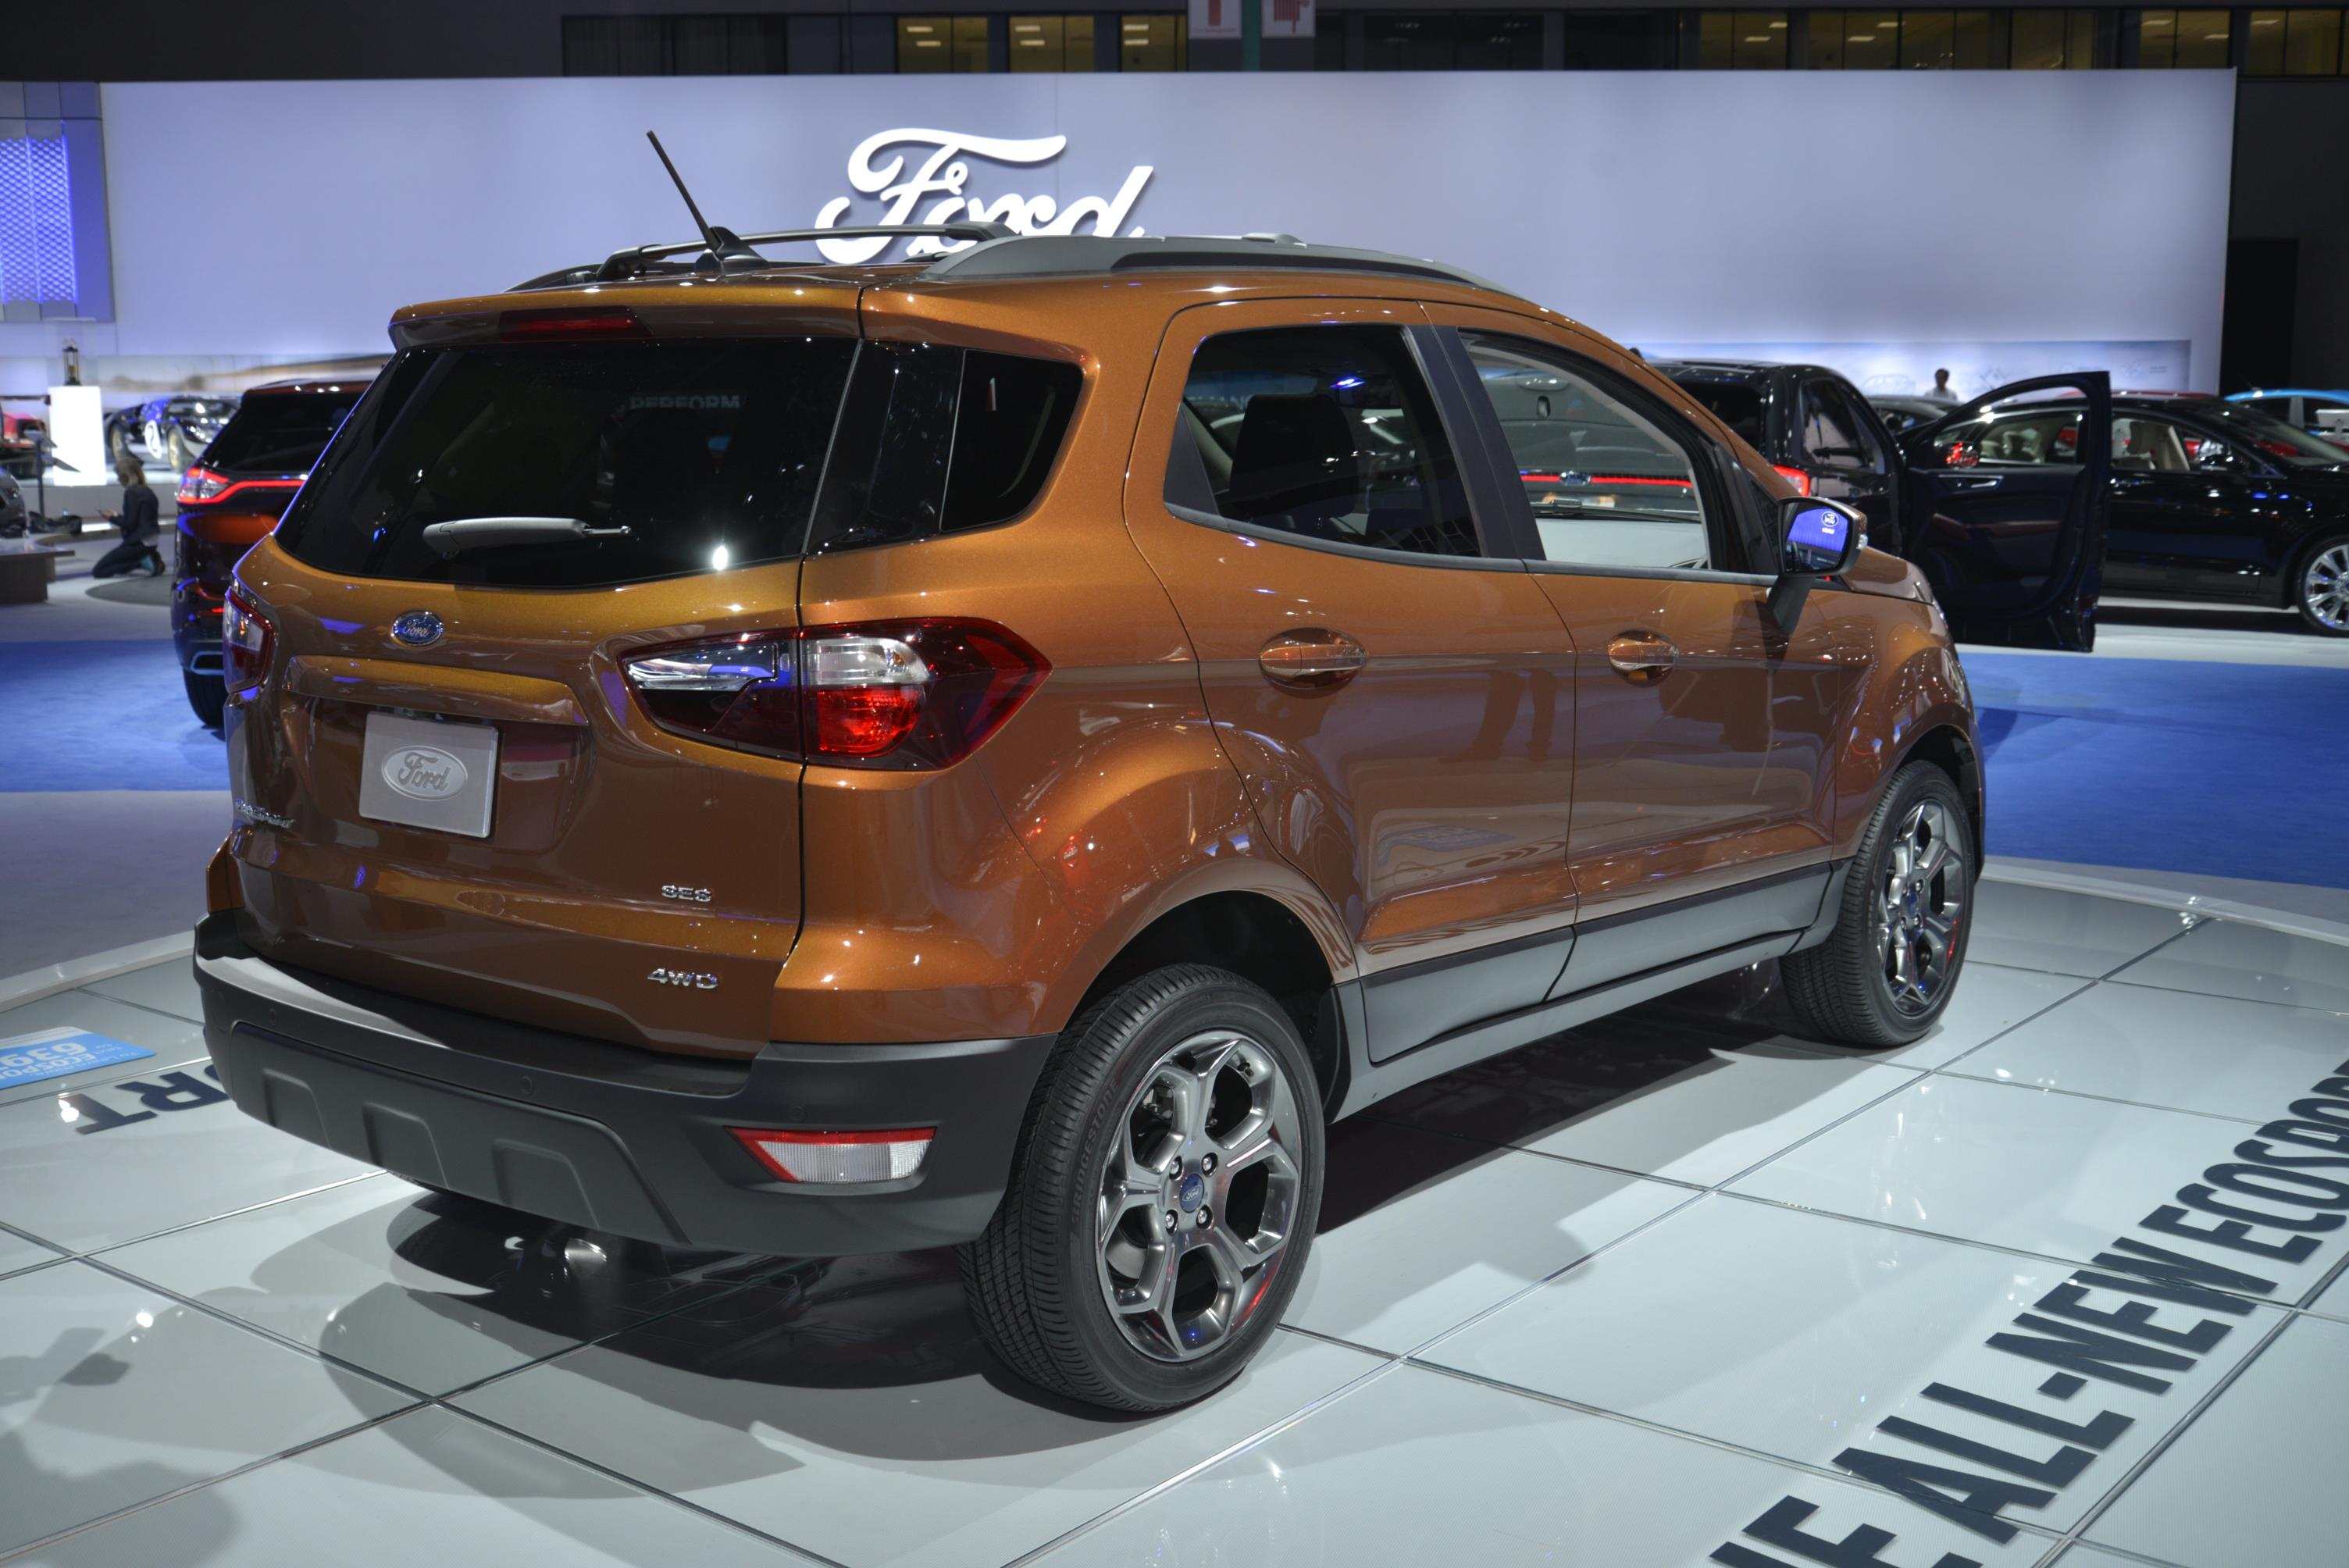 Ford New Suv >> ALL-NEW ECOSPORT - FORD'S SMALLEST SUV - myAutoWorld.com